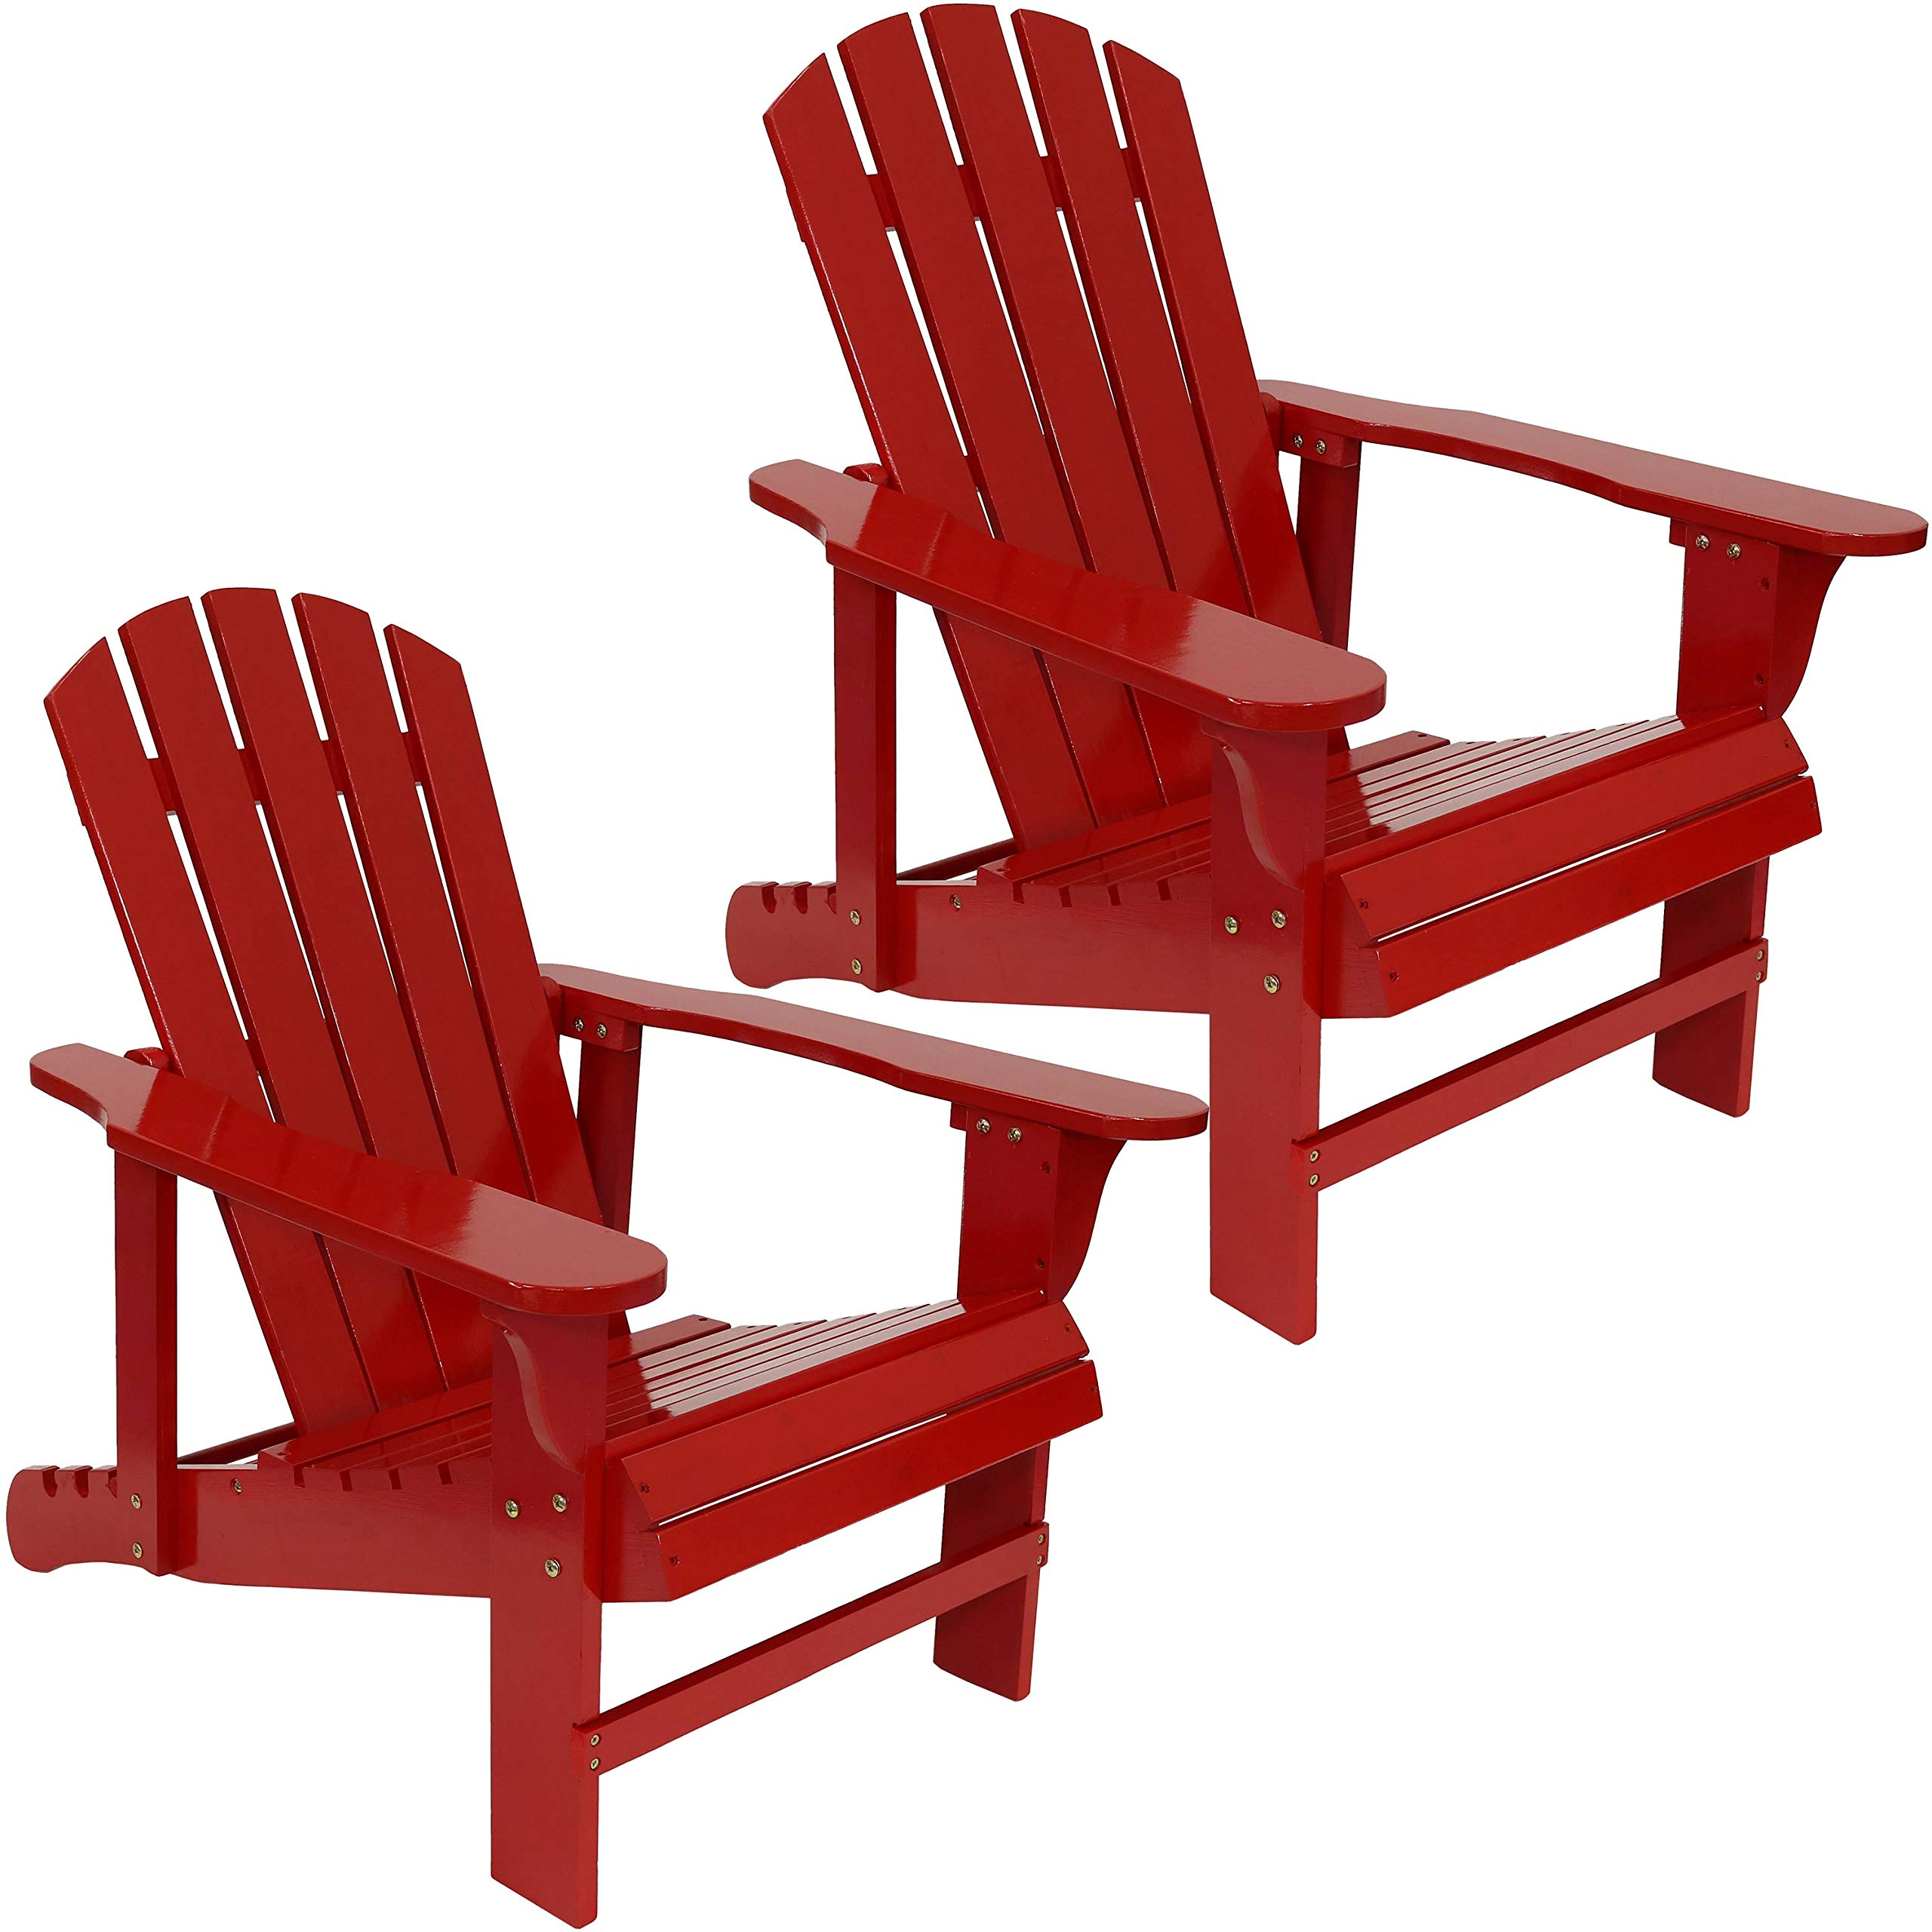 Sunnydaze Wooden Outdoor Adirondack Chair with Adjustable Backrest, 250-Pound Capacity, Set of 2, Red by Sunnydaze Decor